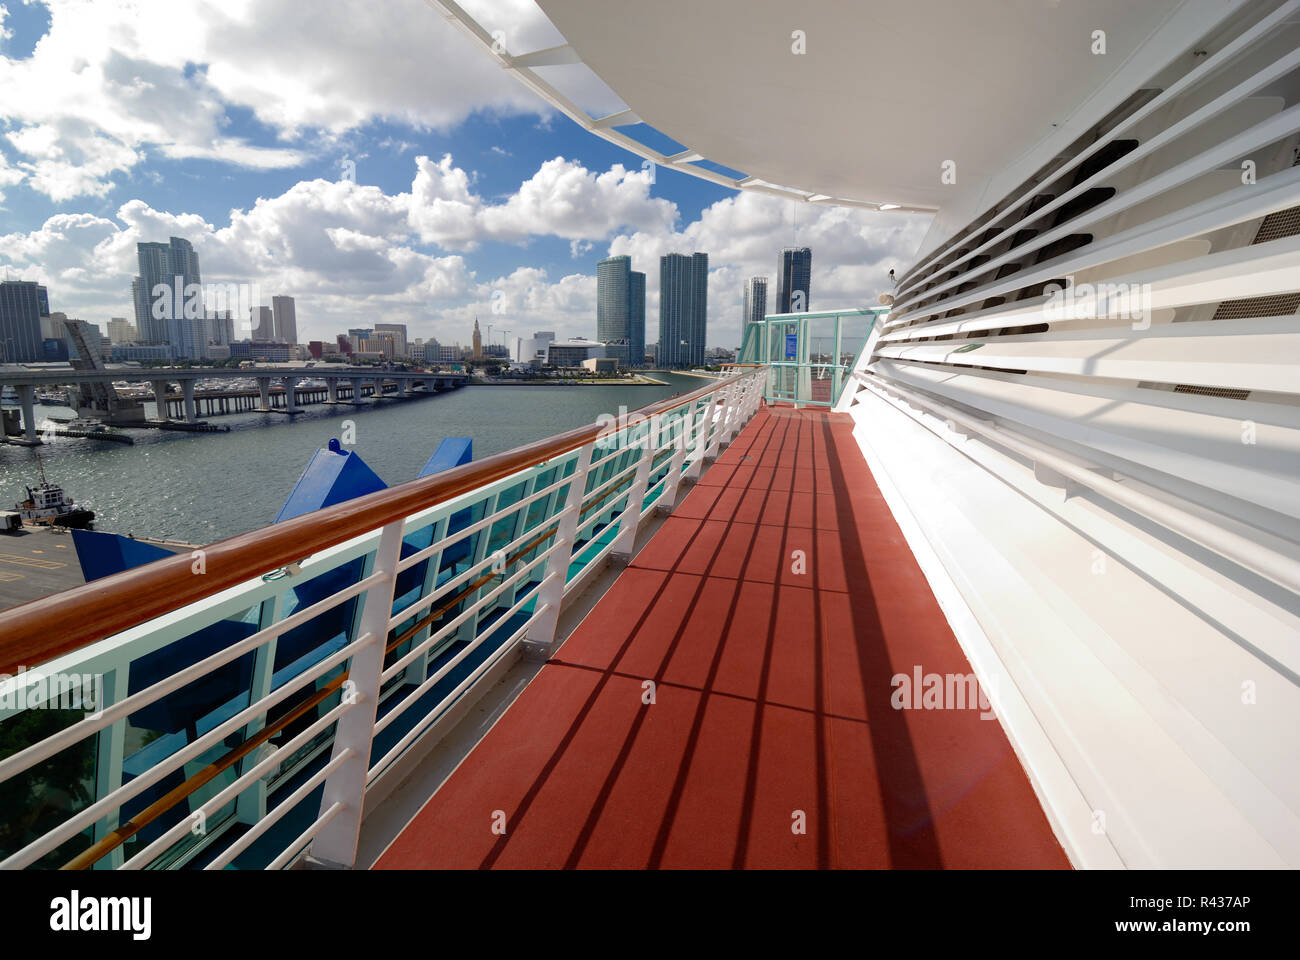 The upper deck area Royal Caribbean Interational's Majesty of the Seas cruise ship, overlooking the port of Miami, Florida. - Stock Image